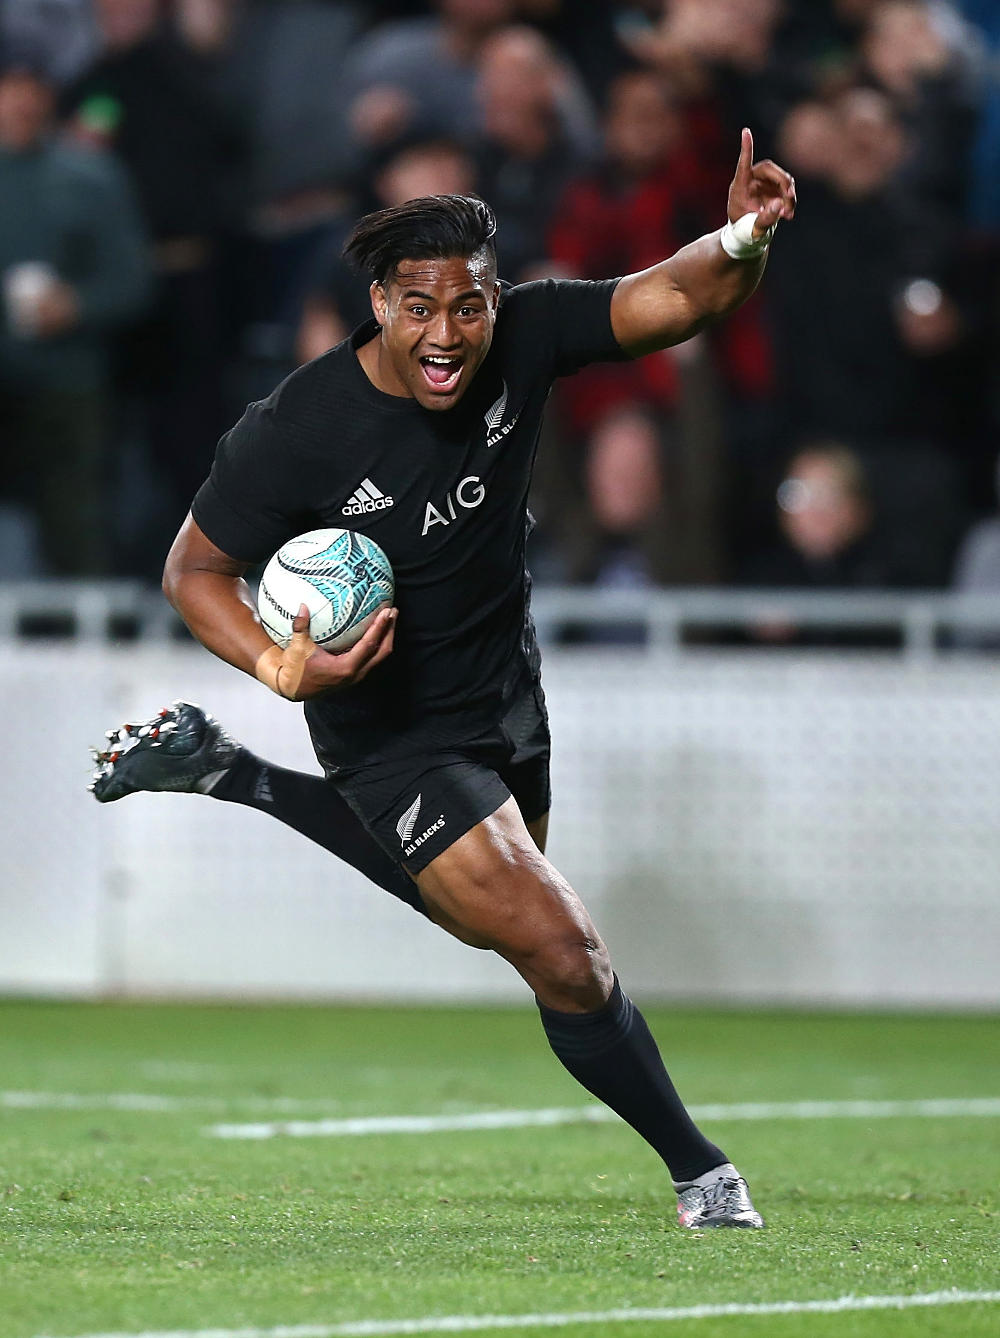 julian-savea-all-blacks-new-zealand-rugby-union-beldisloe-cup-2016-tall